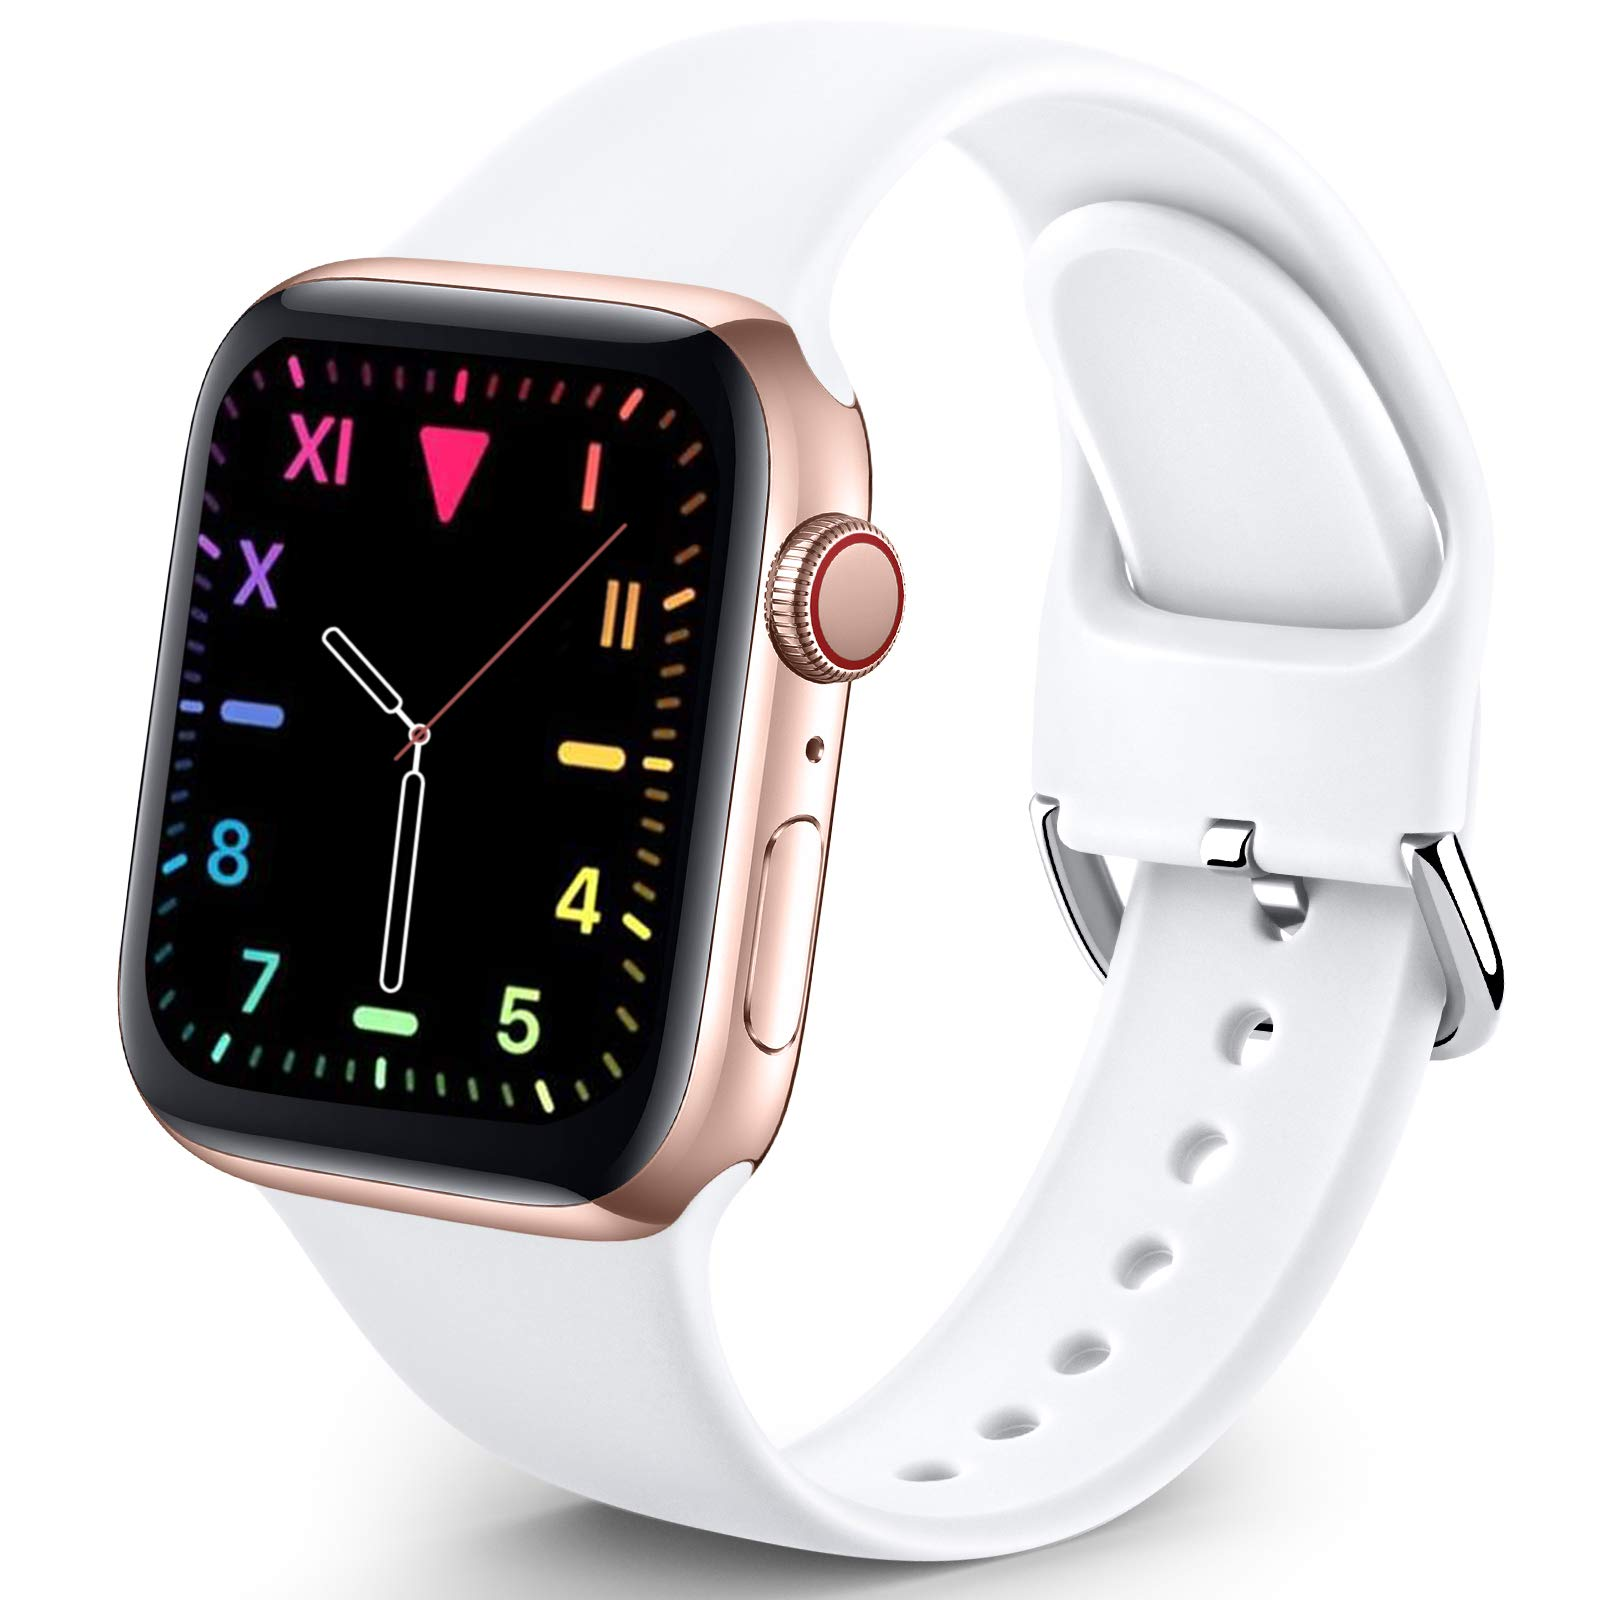 Sport Band Compatible with Apple Watch iWatch Bands 38mm 40mm for Women Men,Soft Silicone Strap Wristbands for Apple Watch Series 3 Series 6 Series 5 Series 4 Series 2 Series 1 Series SE,White